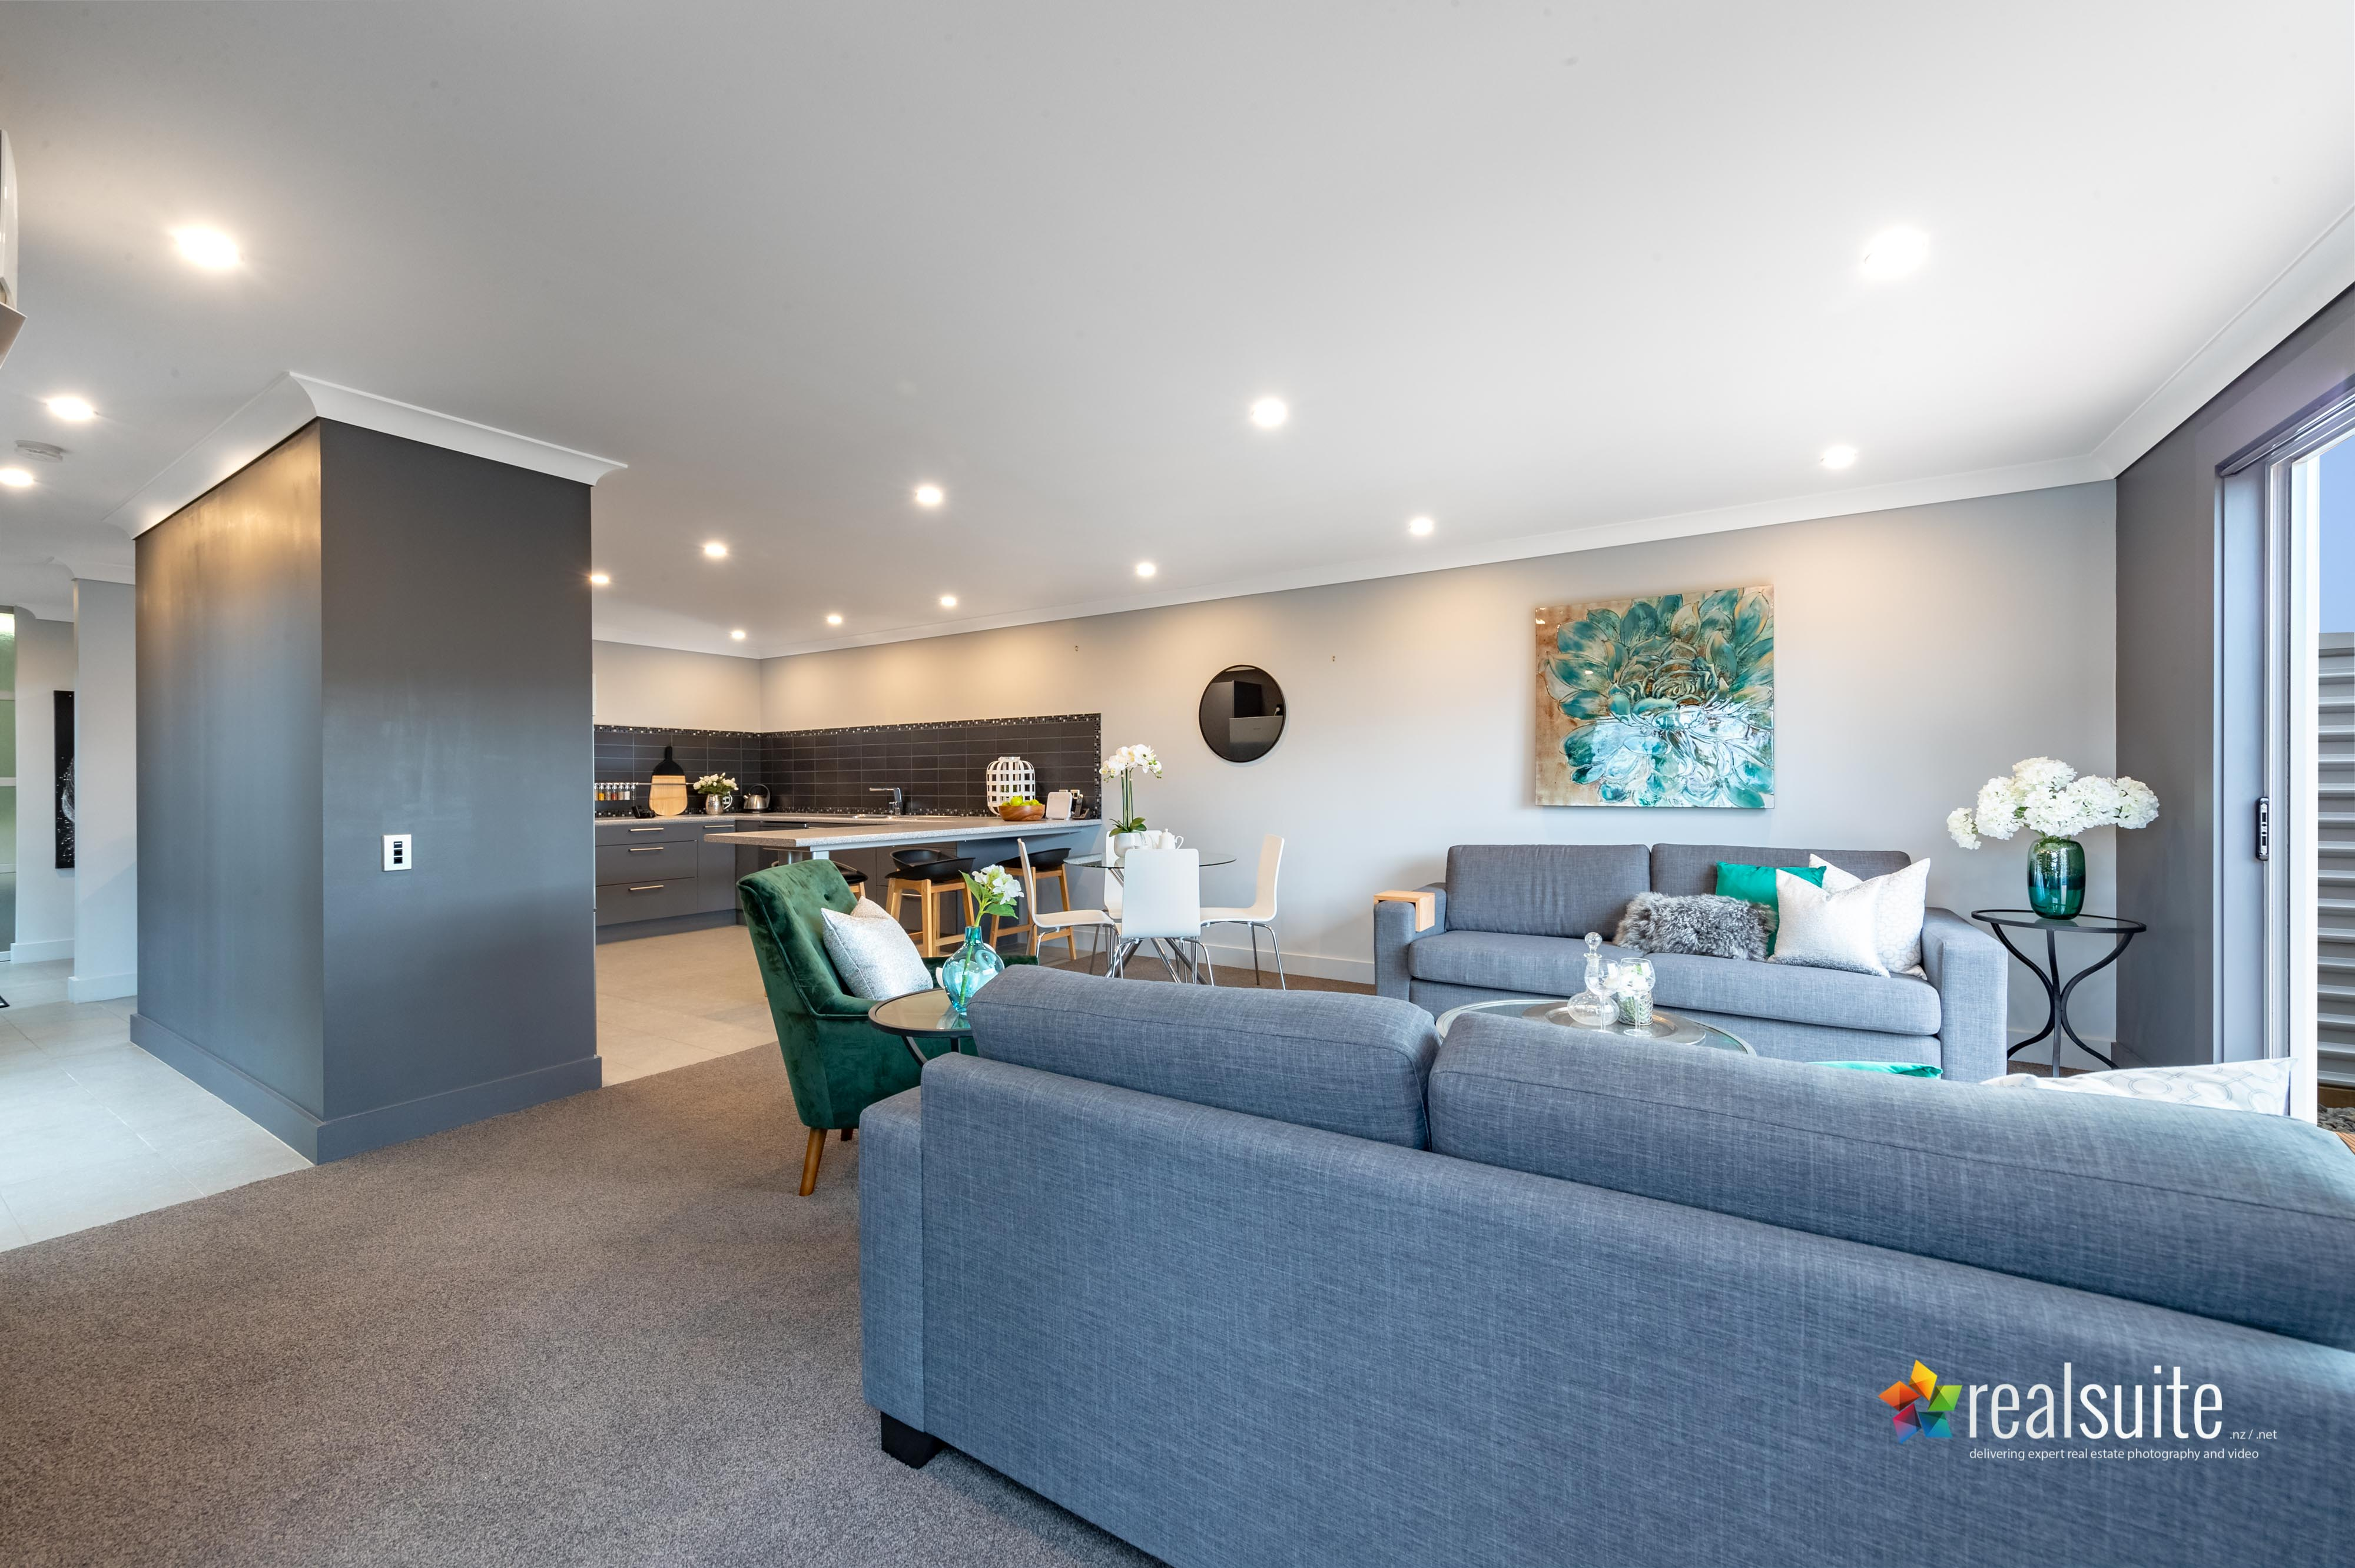 23a Drummond Cres, Kelson 0657